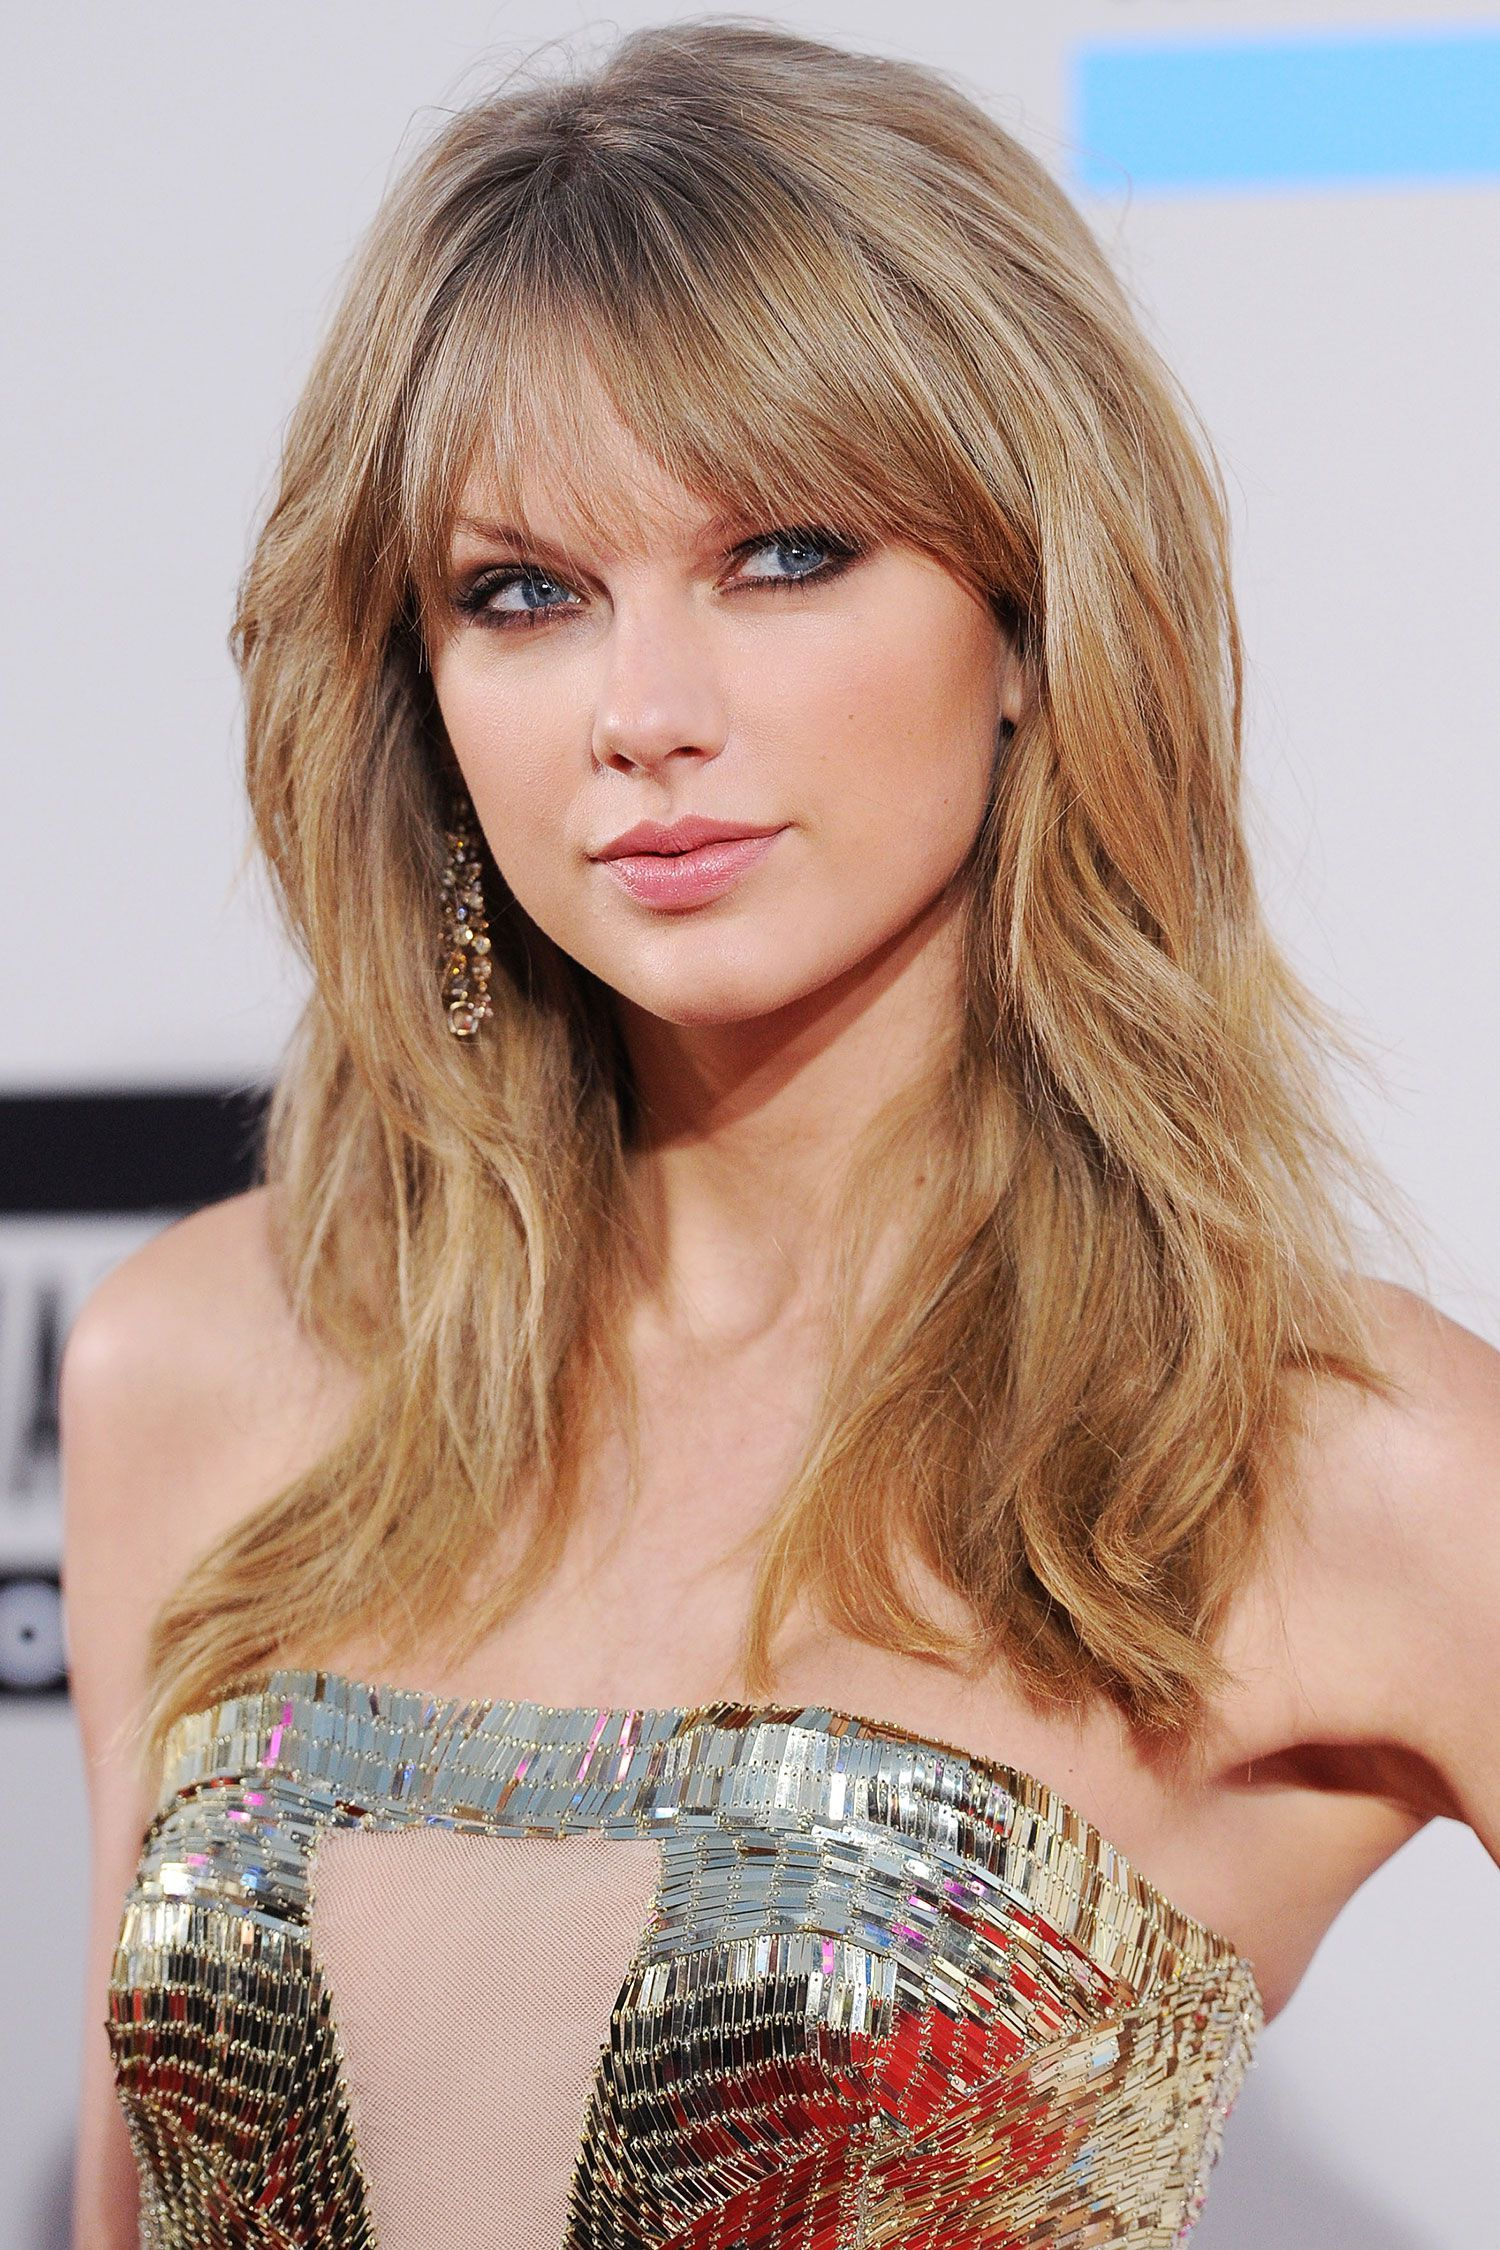 Taylor Swifts Amazing Beauty Transformation Through The